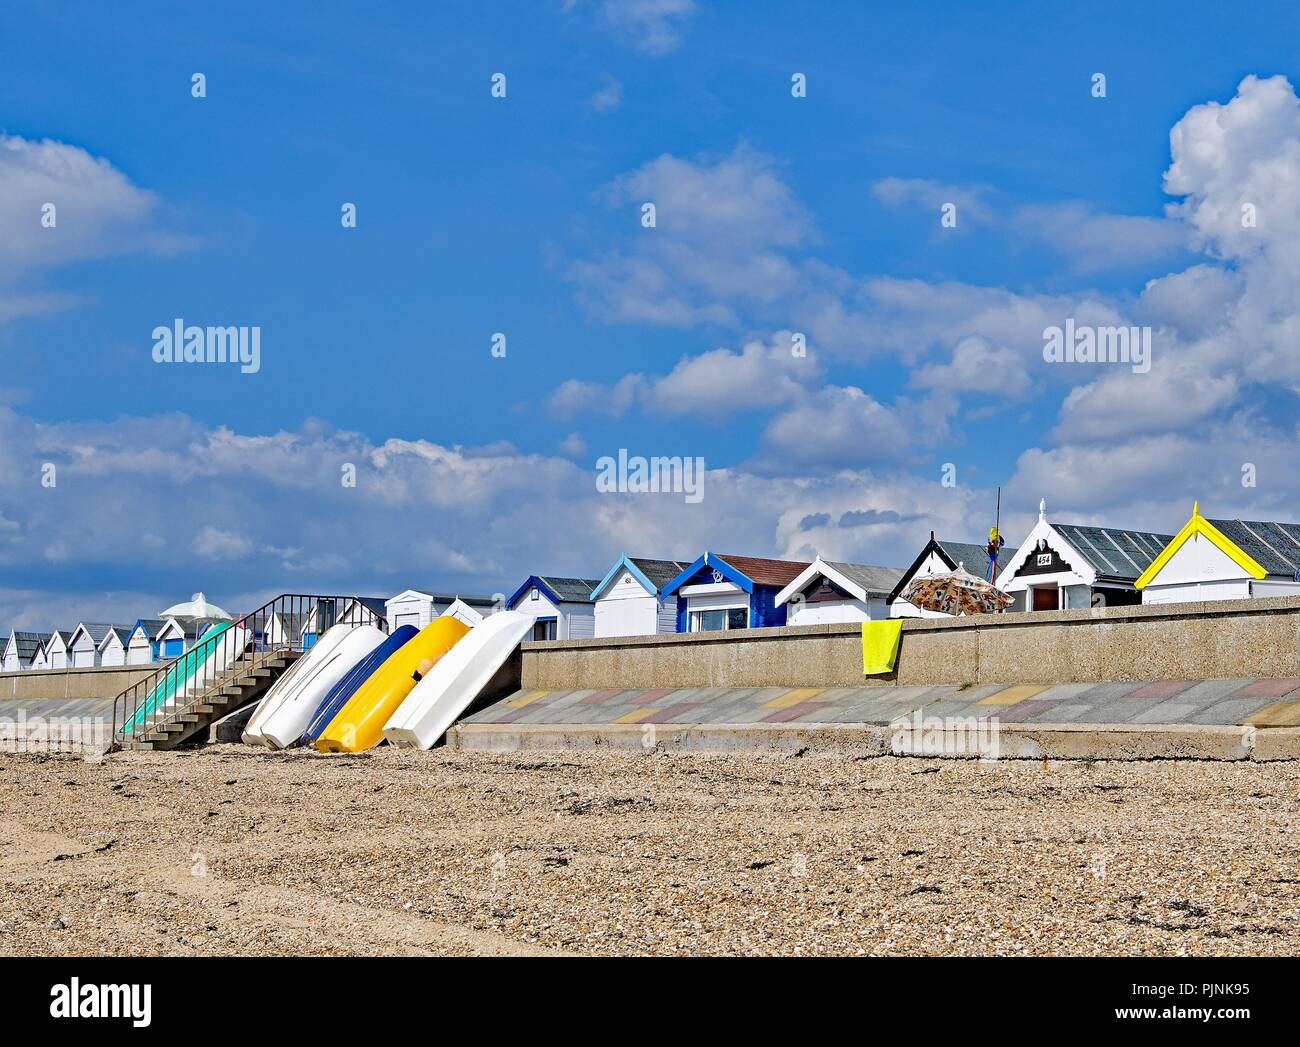 Taken to capture the pretty pastel shades of the contemporary beach huts on South End on Sea, Essex, England. - Stock Image